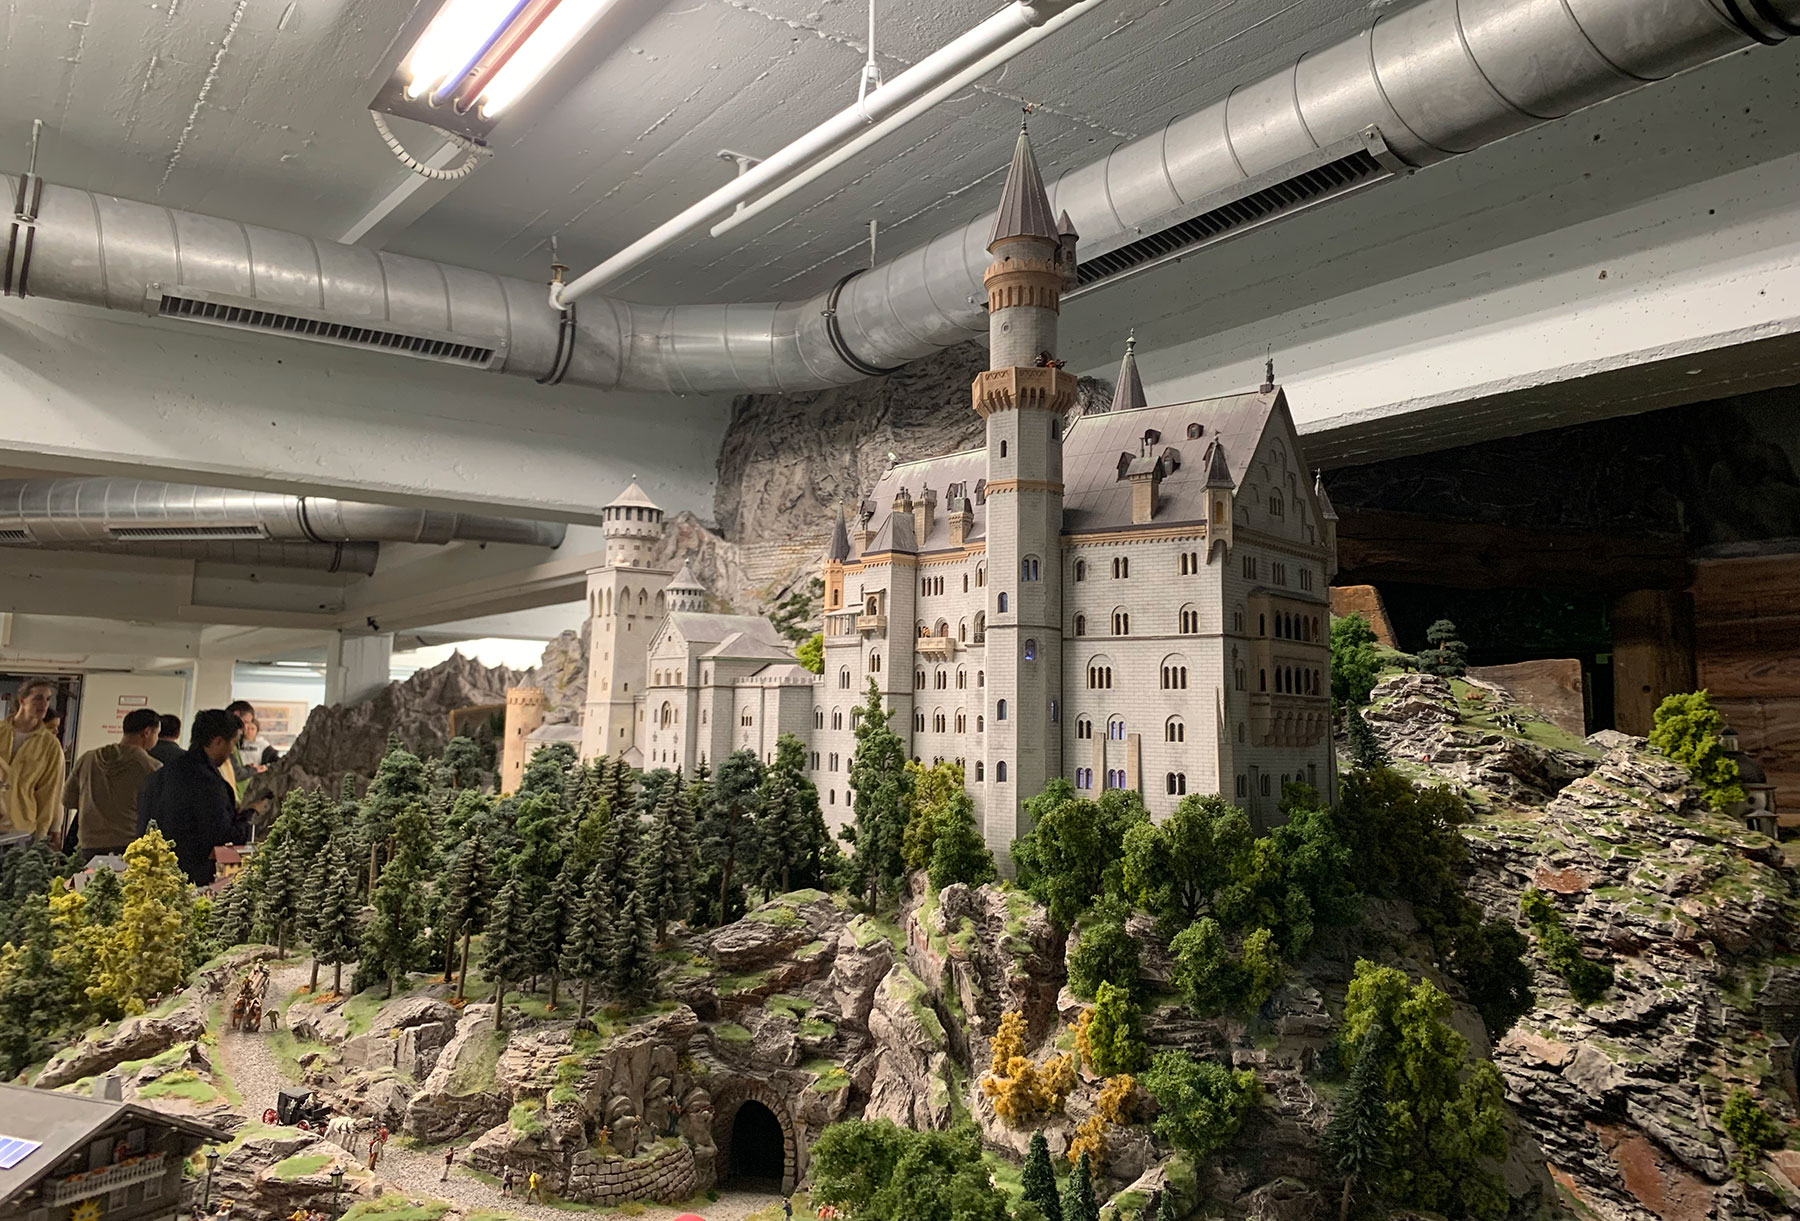 NOTE: This is a pic I took at Miniatur World of the Neuschwanstein Castle. I preferred this image since it the angle shows its similarity to Disney's castles…